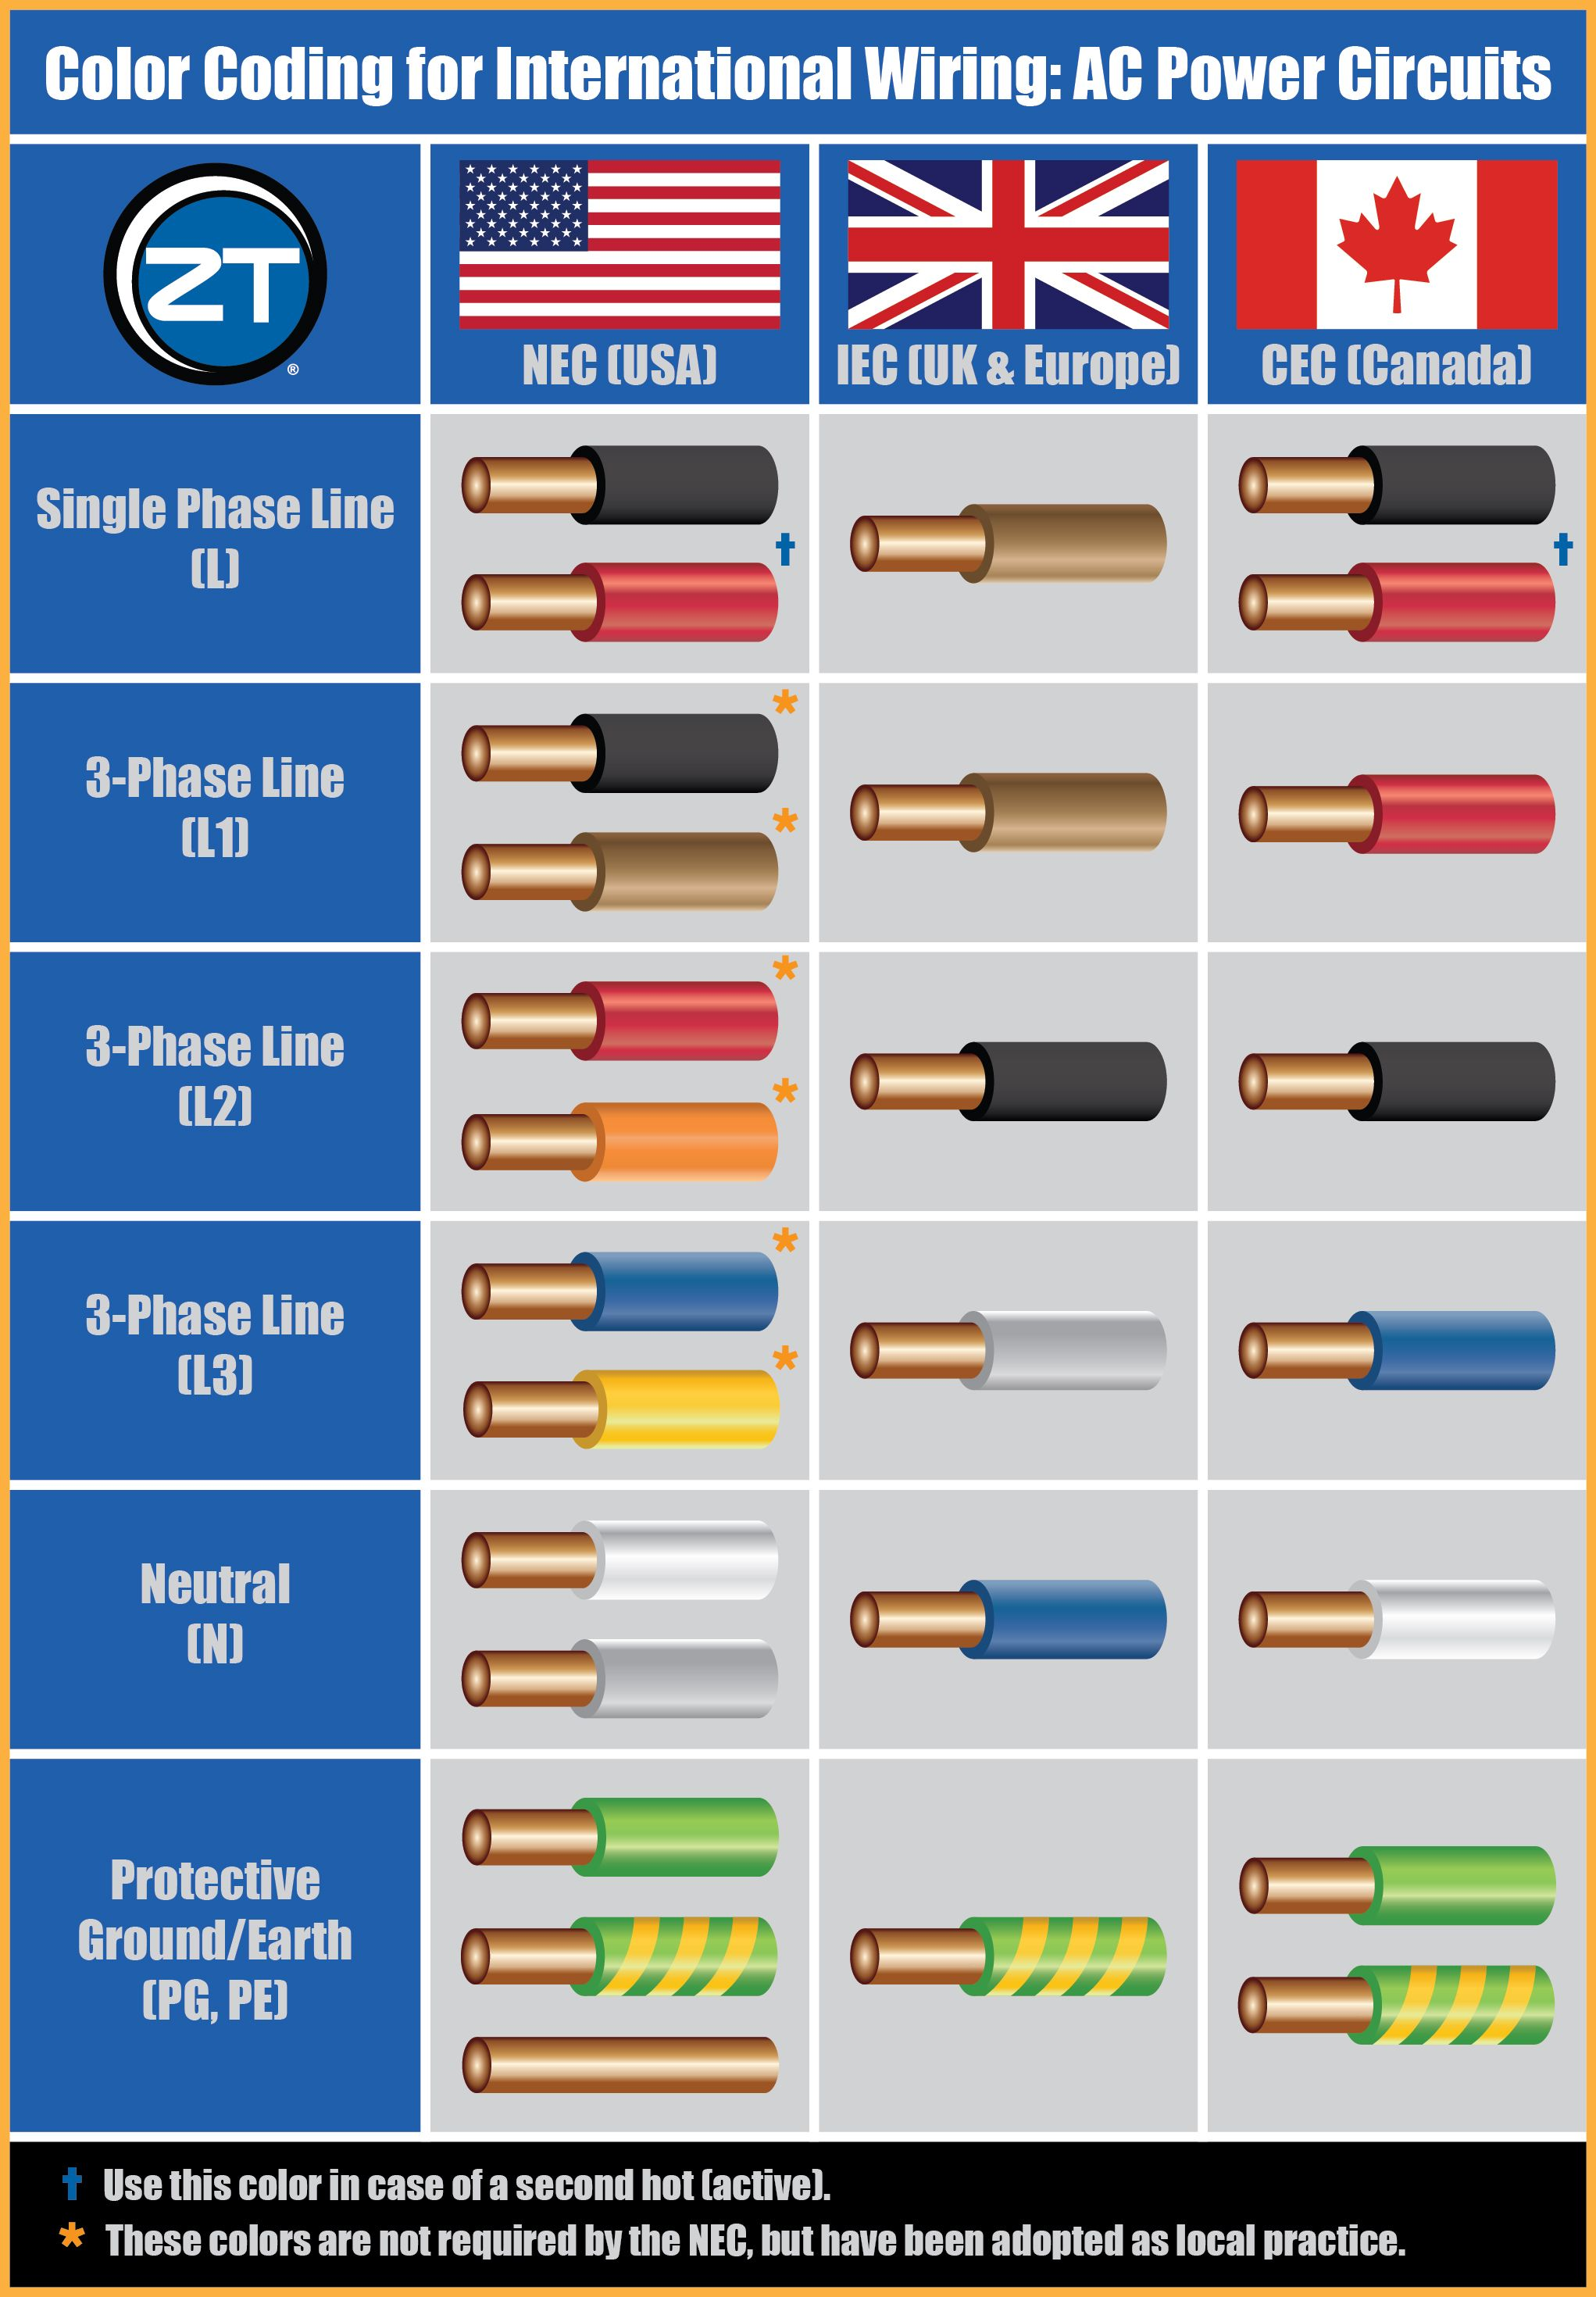 Guide To Color Coding For International Wiring Phone Line Diagram Electrical Electrician Electric Cables